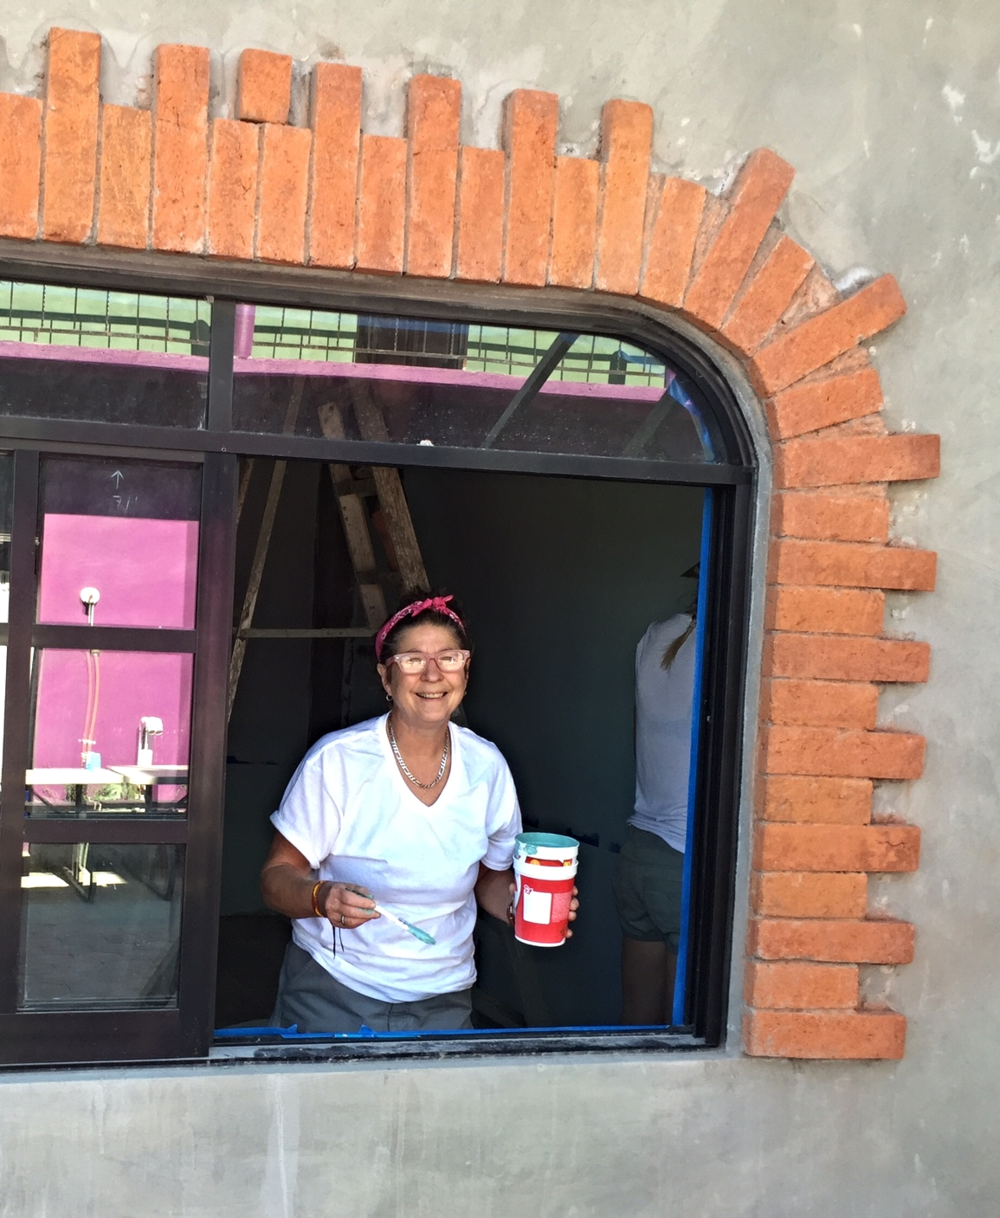 Michele is all smiles as she paints the space that will soon be the kitchen at our children's home!